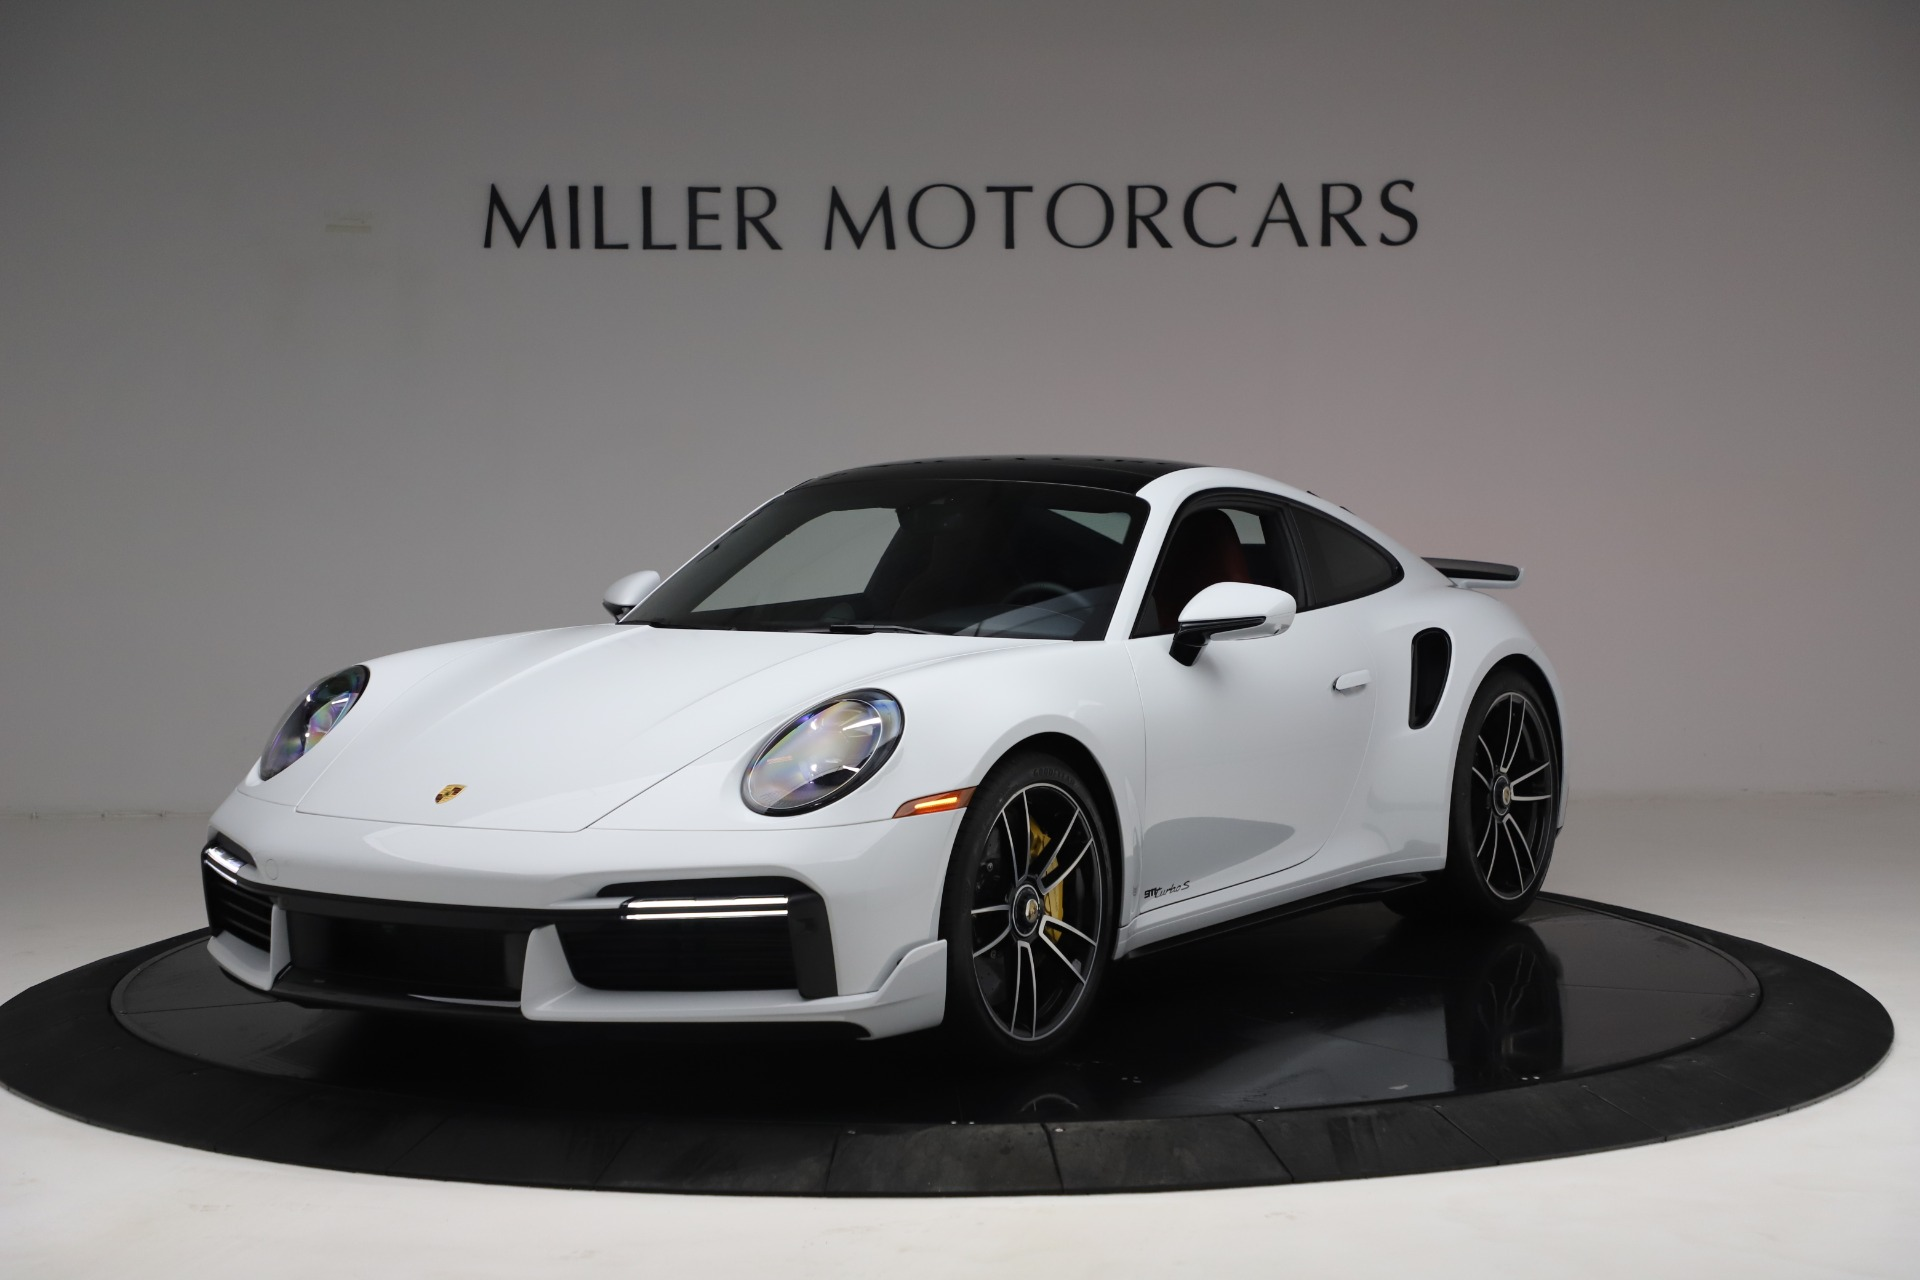 Used 2021 Porsche 911 Turbo S for sale Sold at Bentley Greenwich in Greenwich CT 06830 1